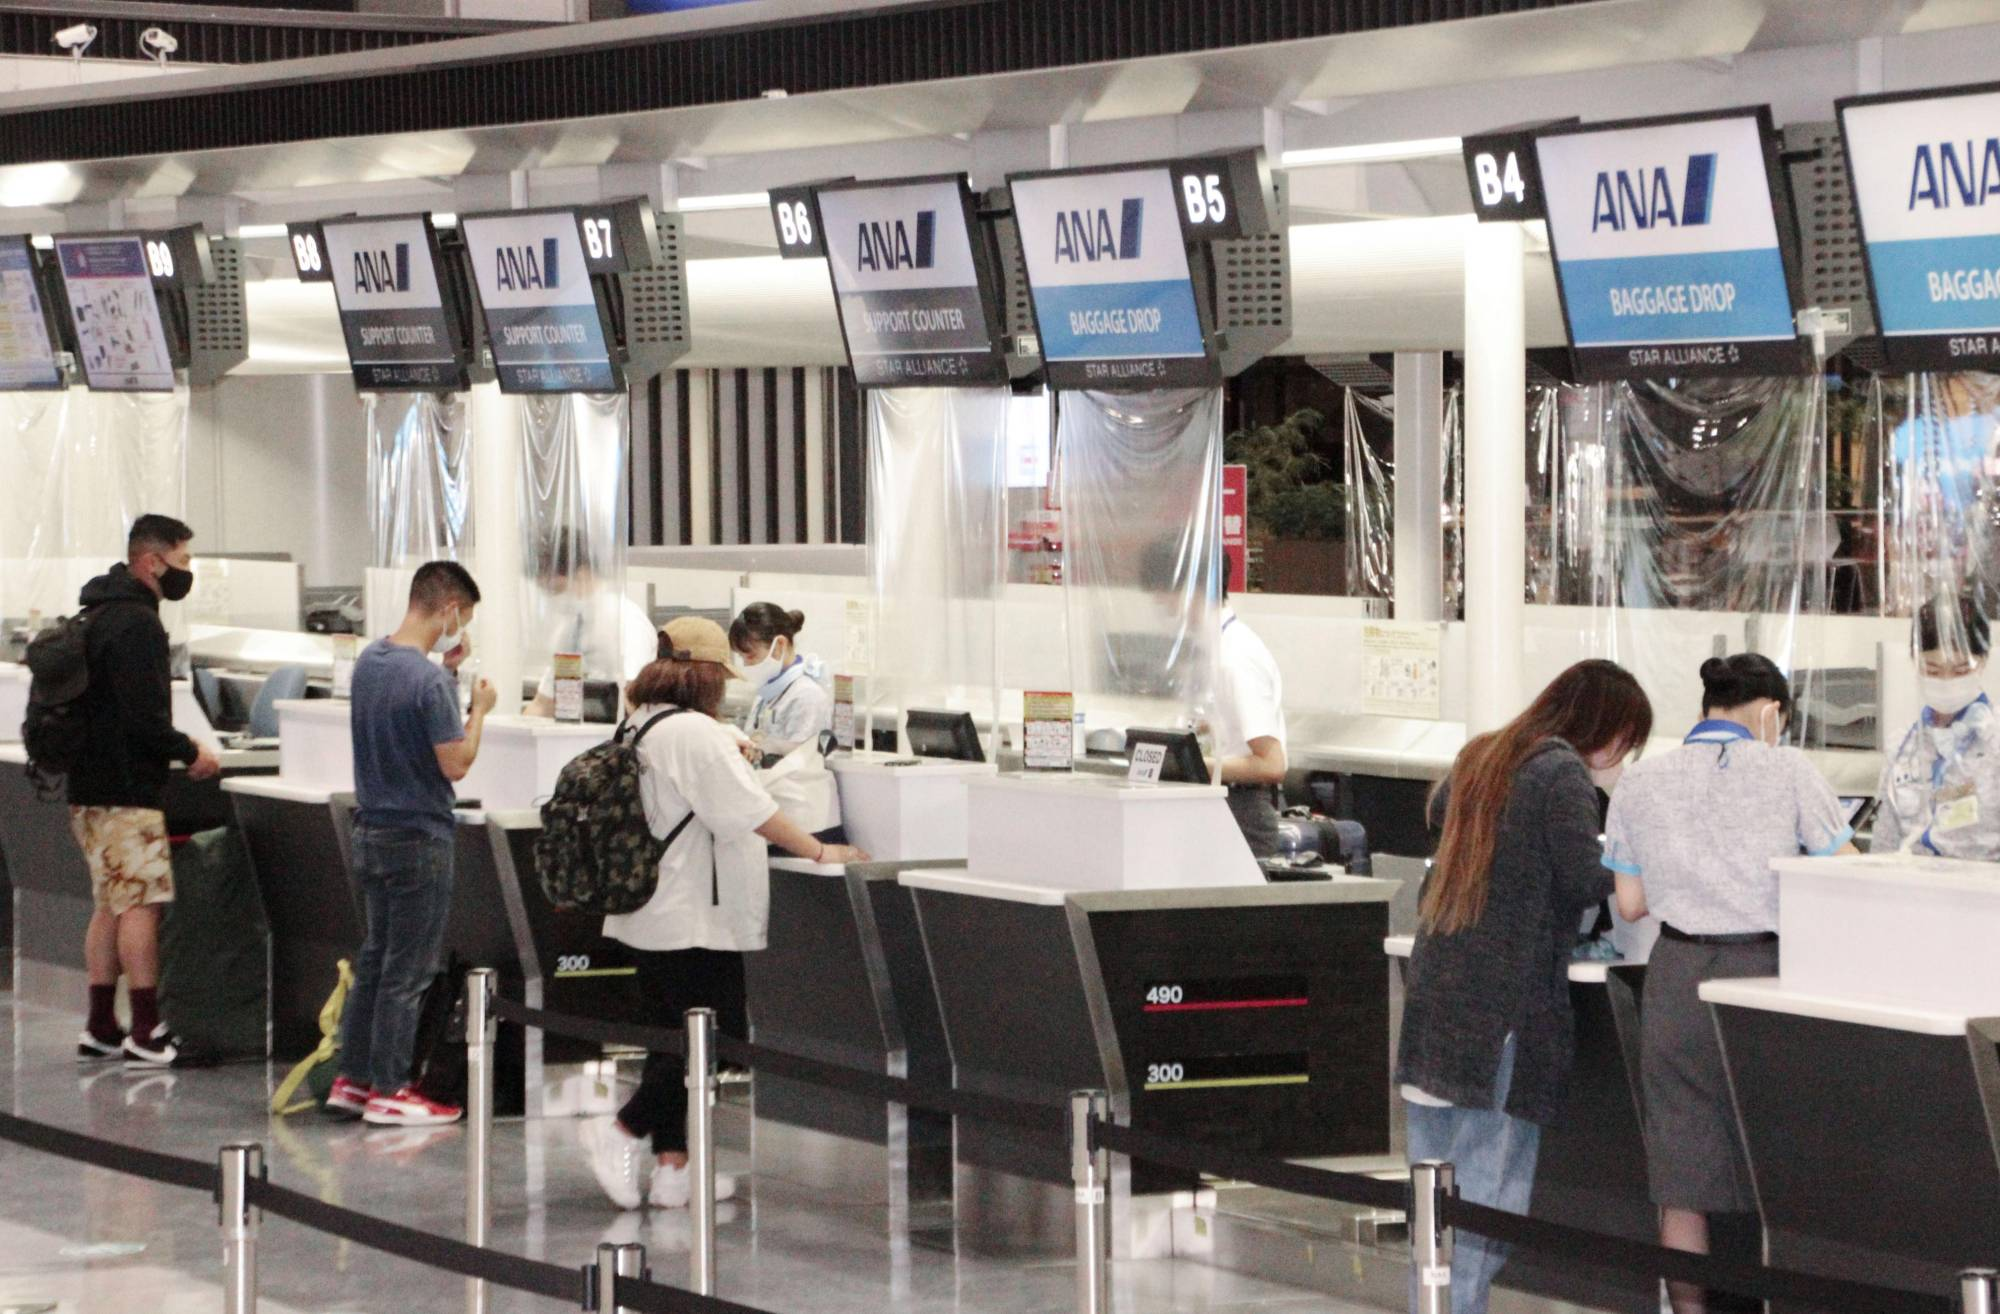 People traveling abroad check in at airline counters at Narita airport on Oct. 5.  | KYODO